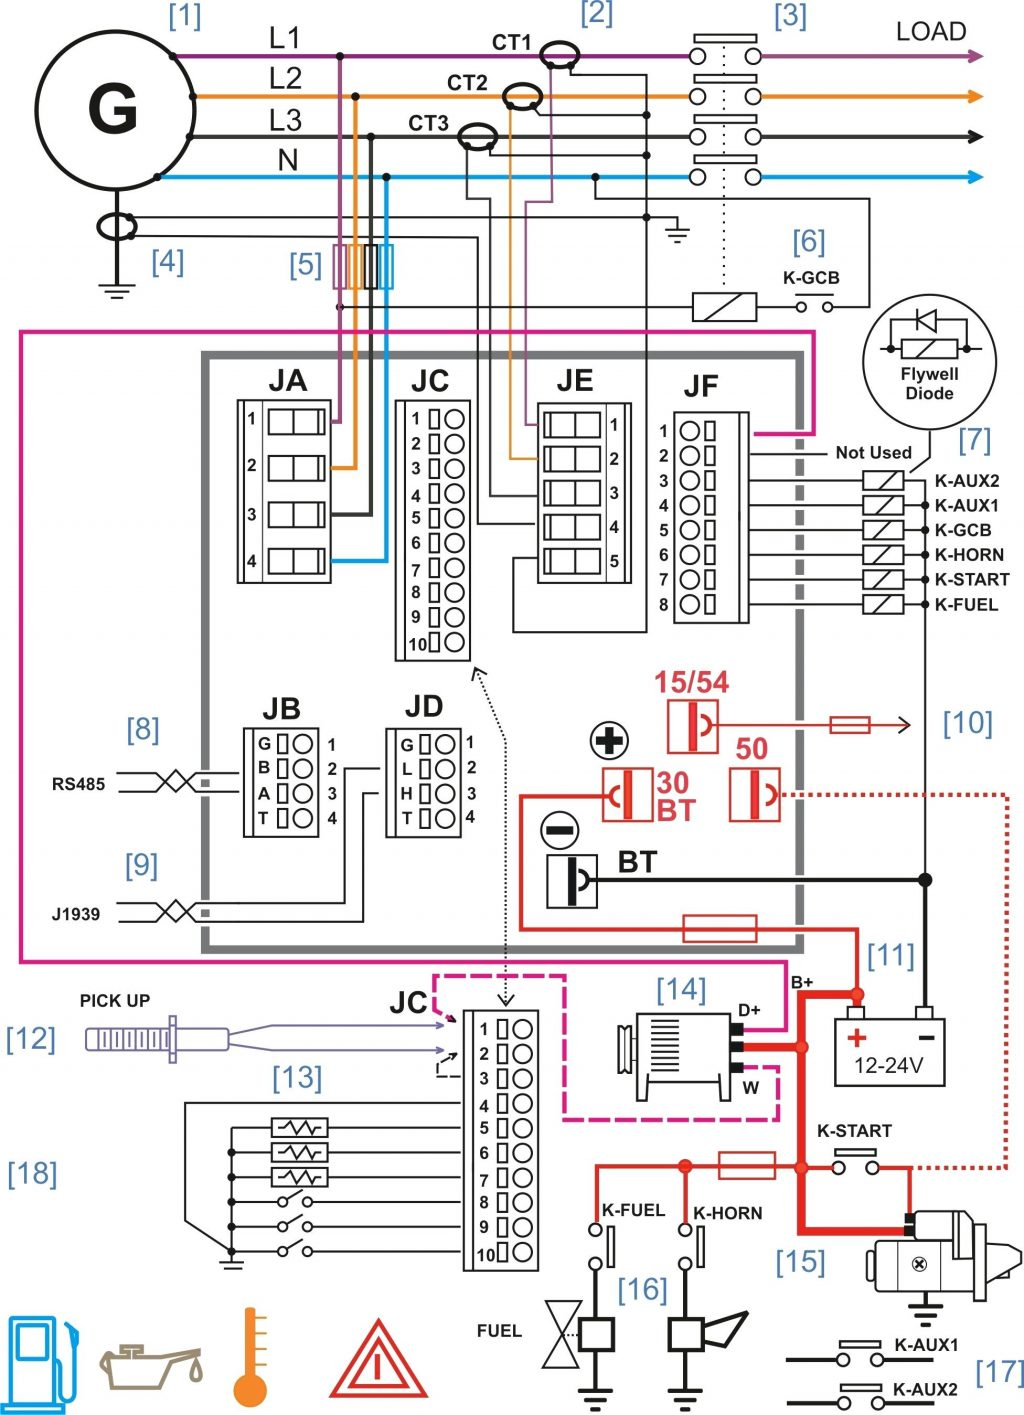 Diesel Engine Drawing At Free For Personal Use Schematics 1024x1415 Car Diagram Starter Generator Control